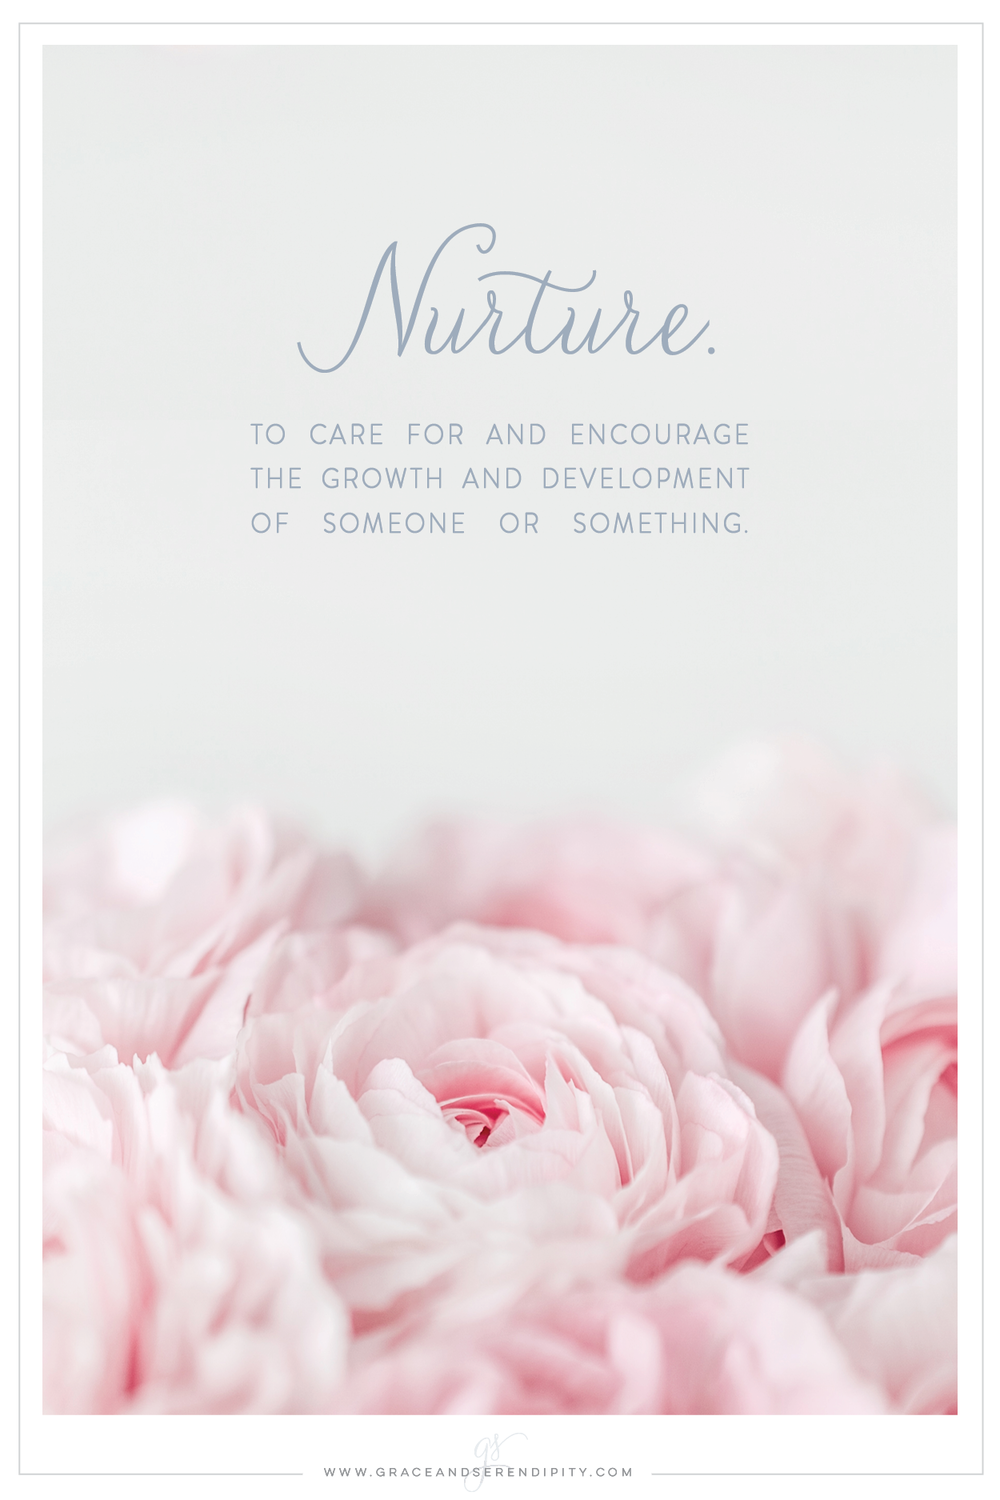 word of the year for 2017 - nurture - post by Grace and Serendipity